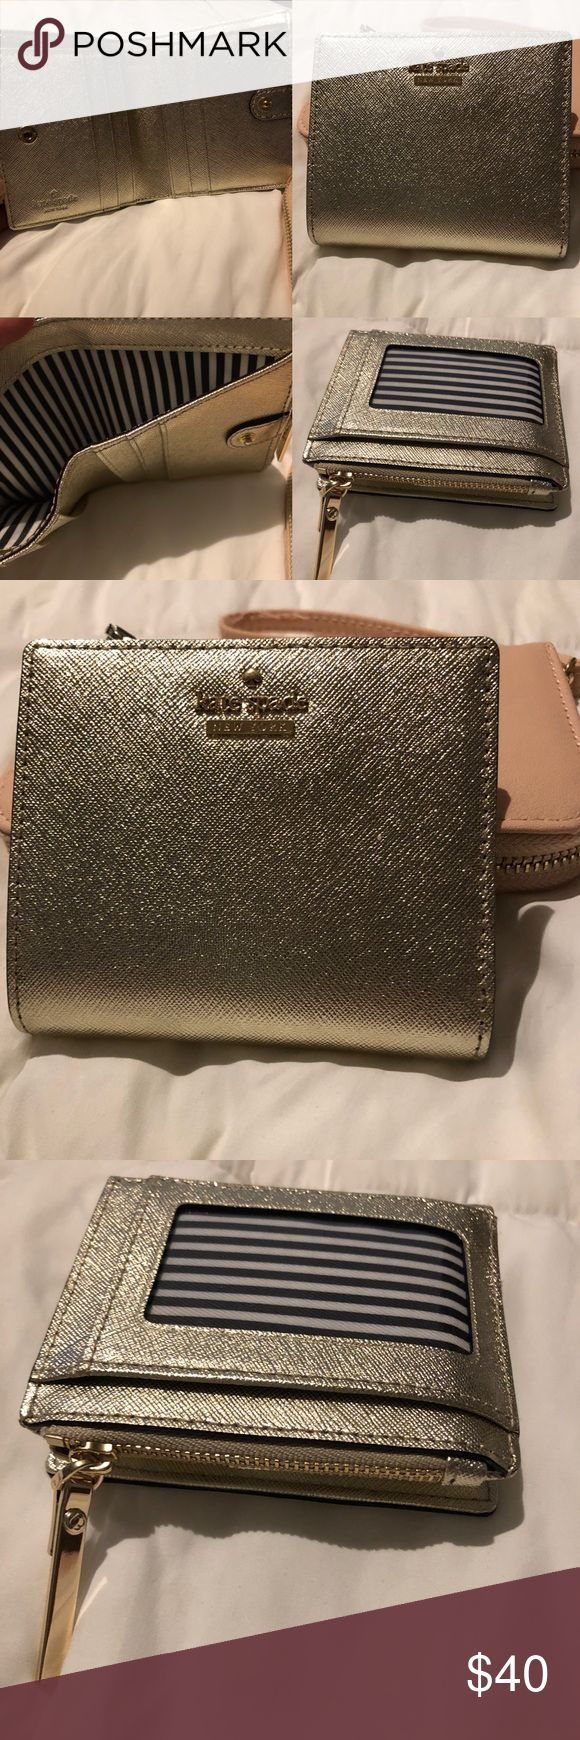 Kate Spade Wallet Leather Gold Metallic 2017 NWOT Kate Spade Wallet Clutch Gold Nordstrom 2017 NWOT Gorgeous! I'm just used to much larger wallets. 6 credit card slots, 1 ID slot, 1 zip pocket, 1 top cash compartment. Style # PWRU6017B Kate Spade Bags Wallets